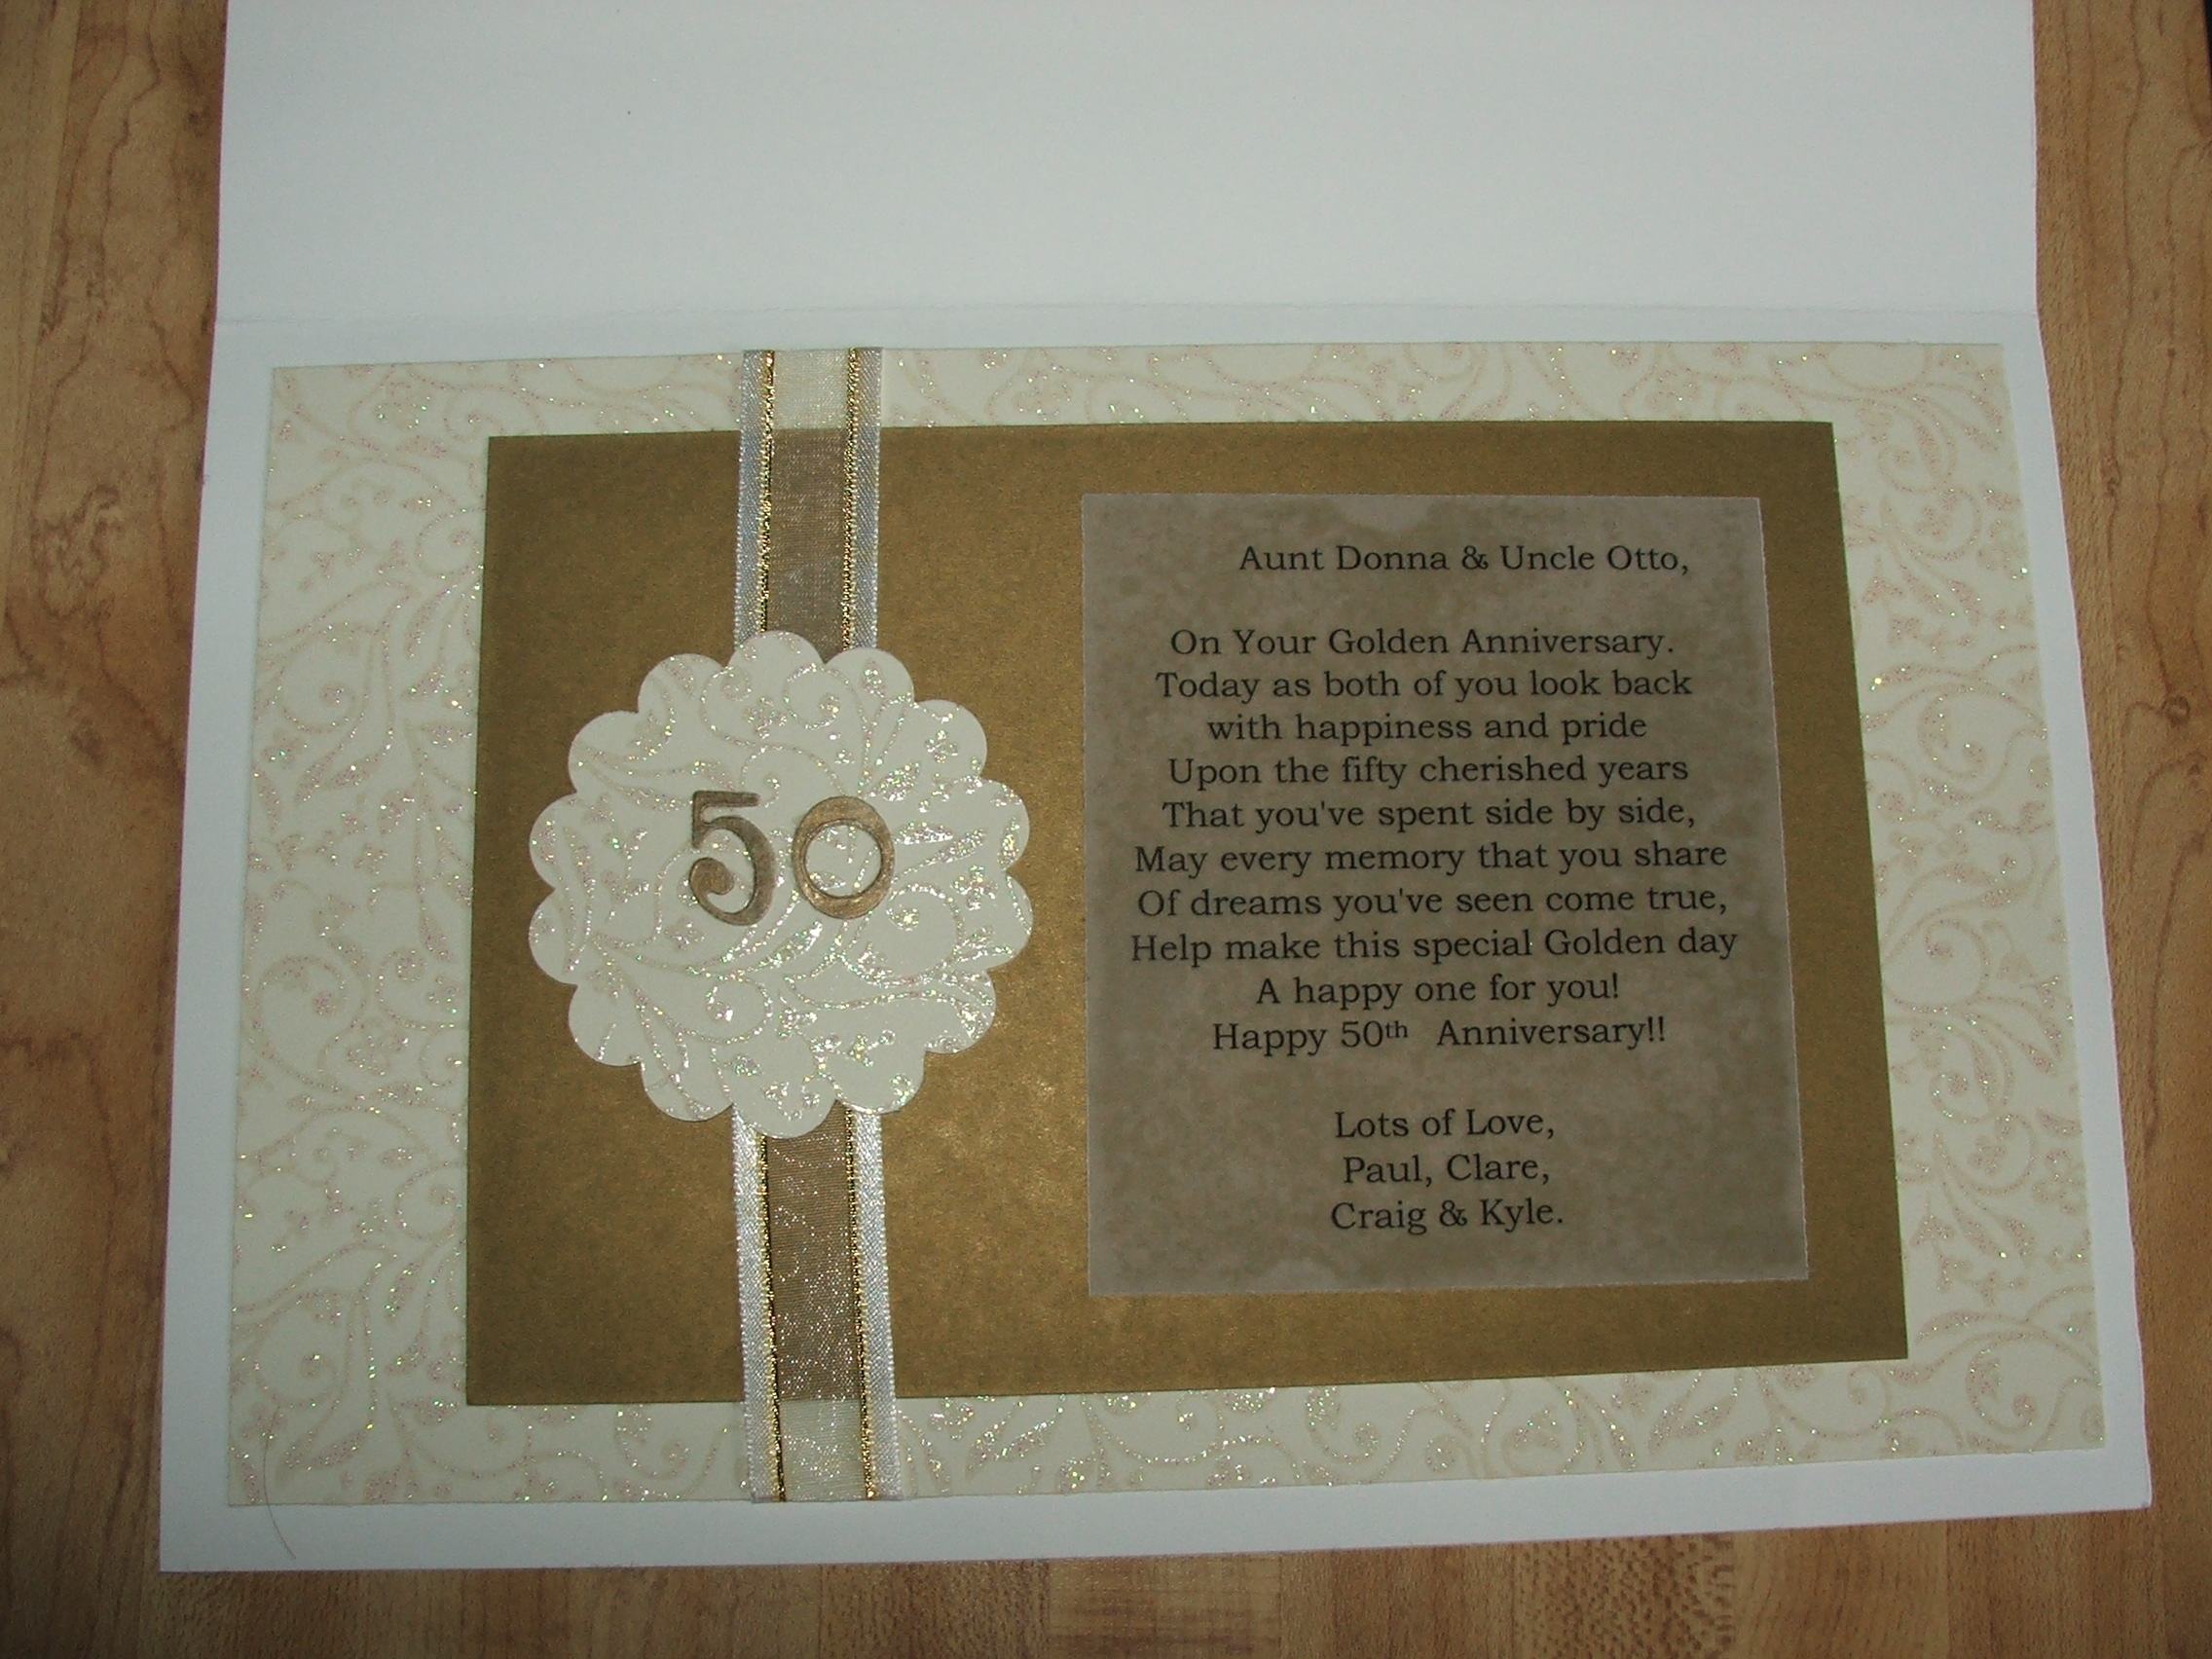 50th Wedding Anniversary Gifts Diy : 50th Anniversary Card (Inside)